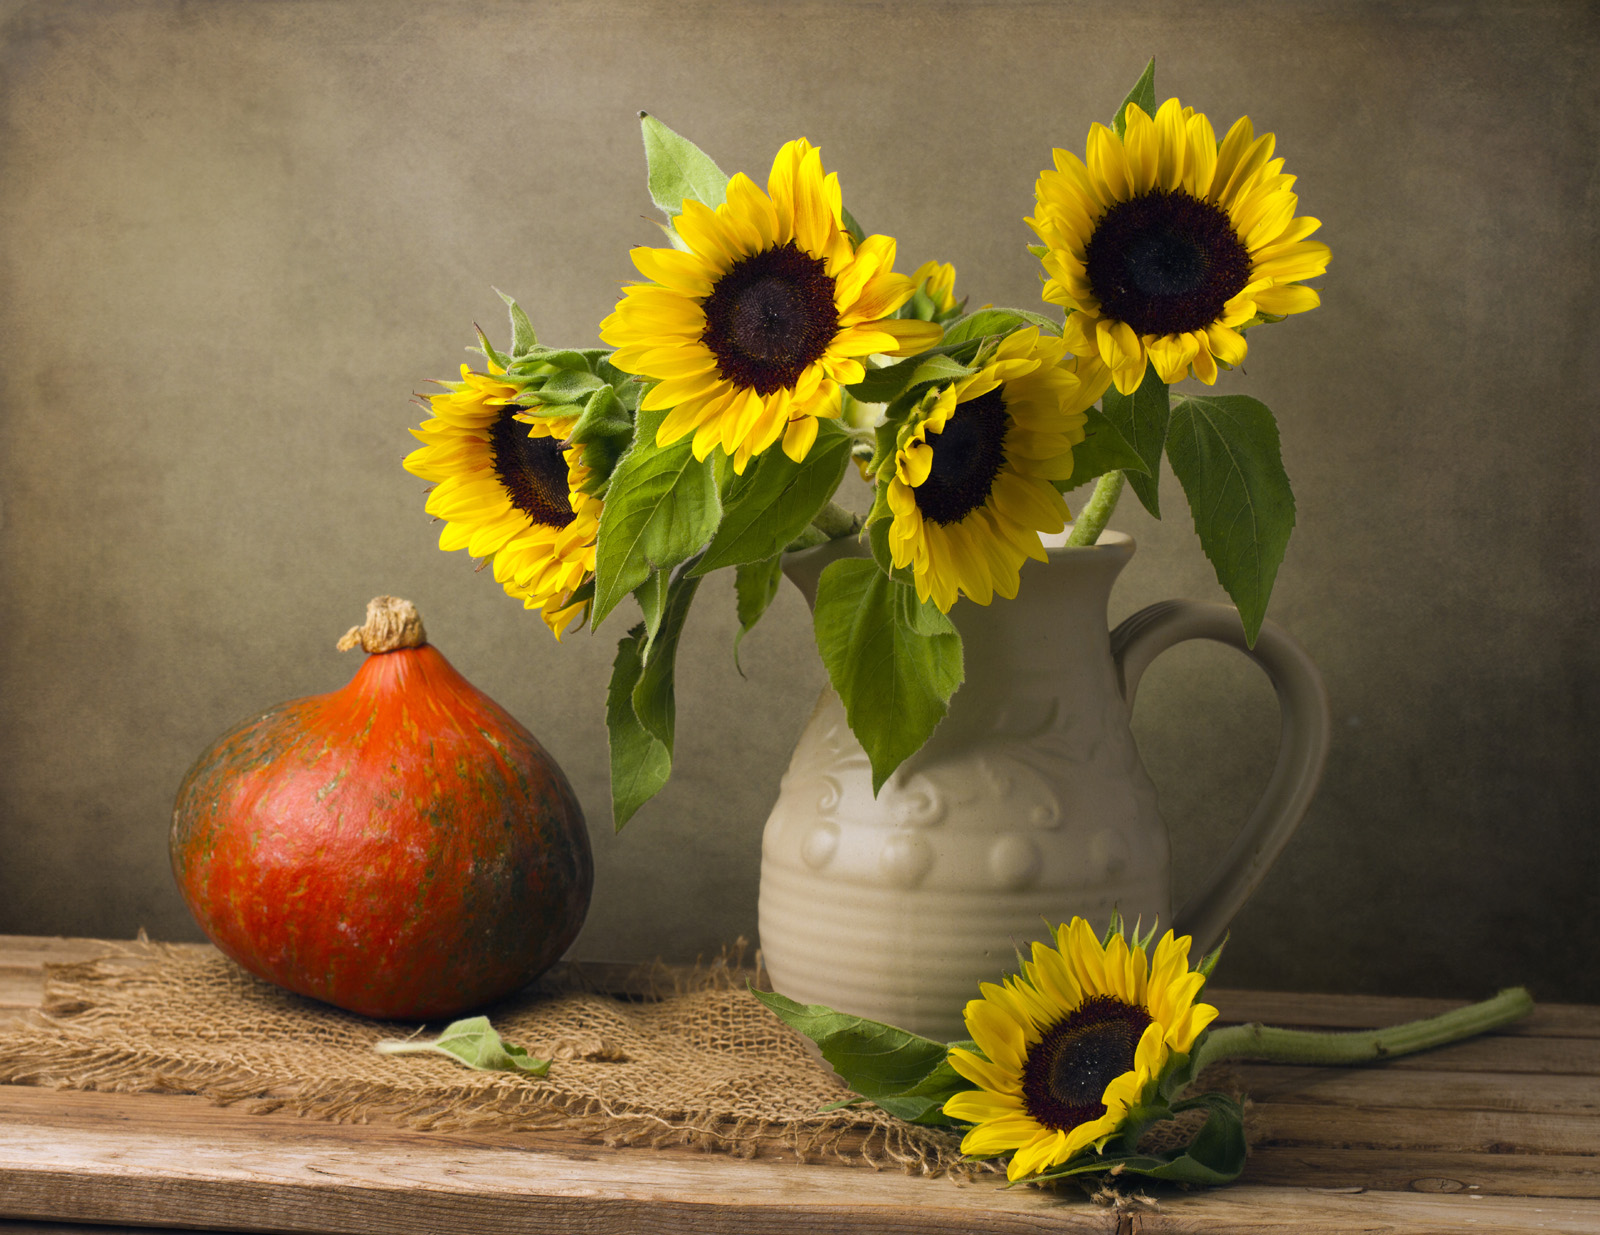 Linen pieces and sunflowers flowers 51838